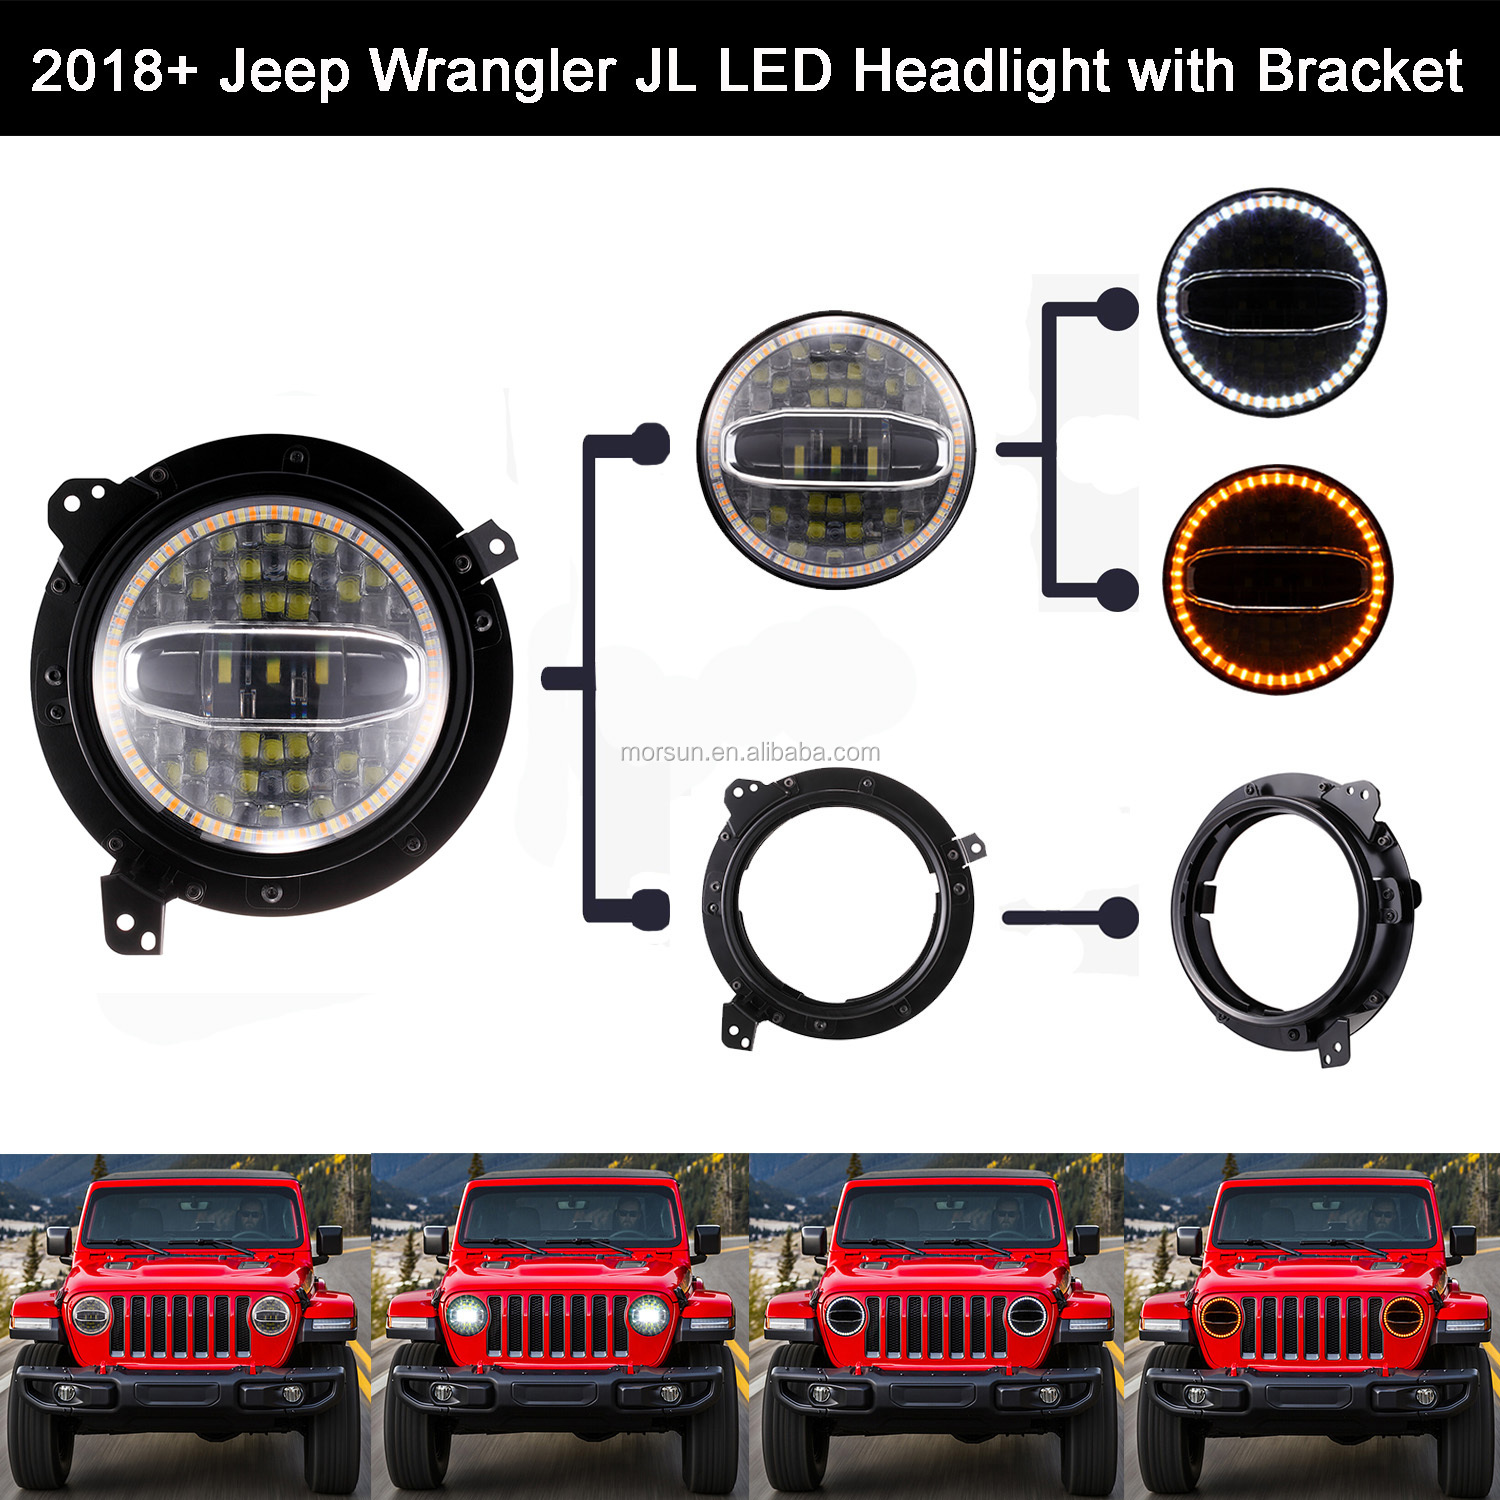 Auto Newest 7 inch round led Headlight 12v h4 Adapter Rings Bracket + New 7'' DRL led Headlights with halo for Wrangler JL 2018